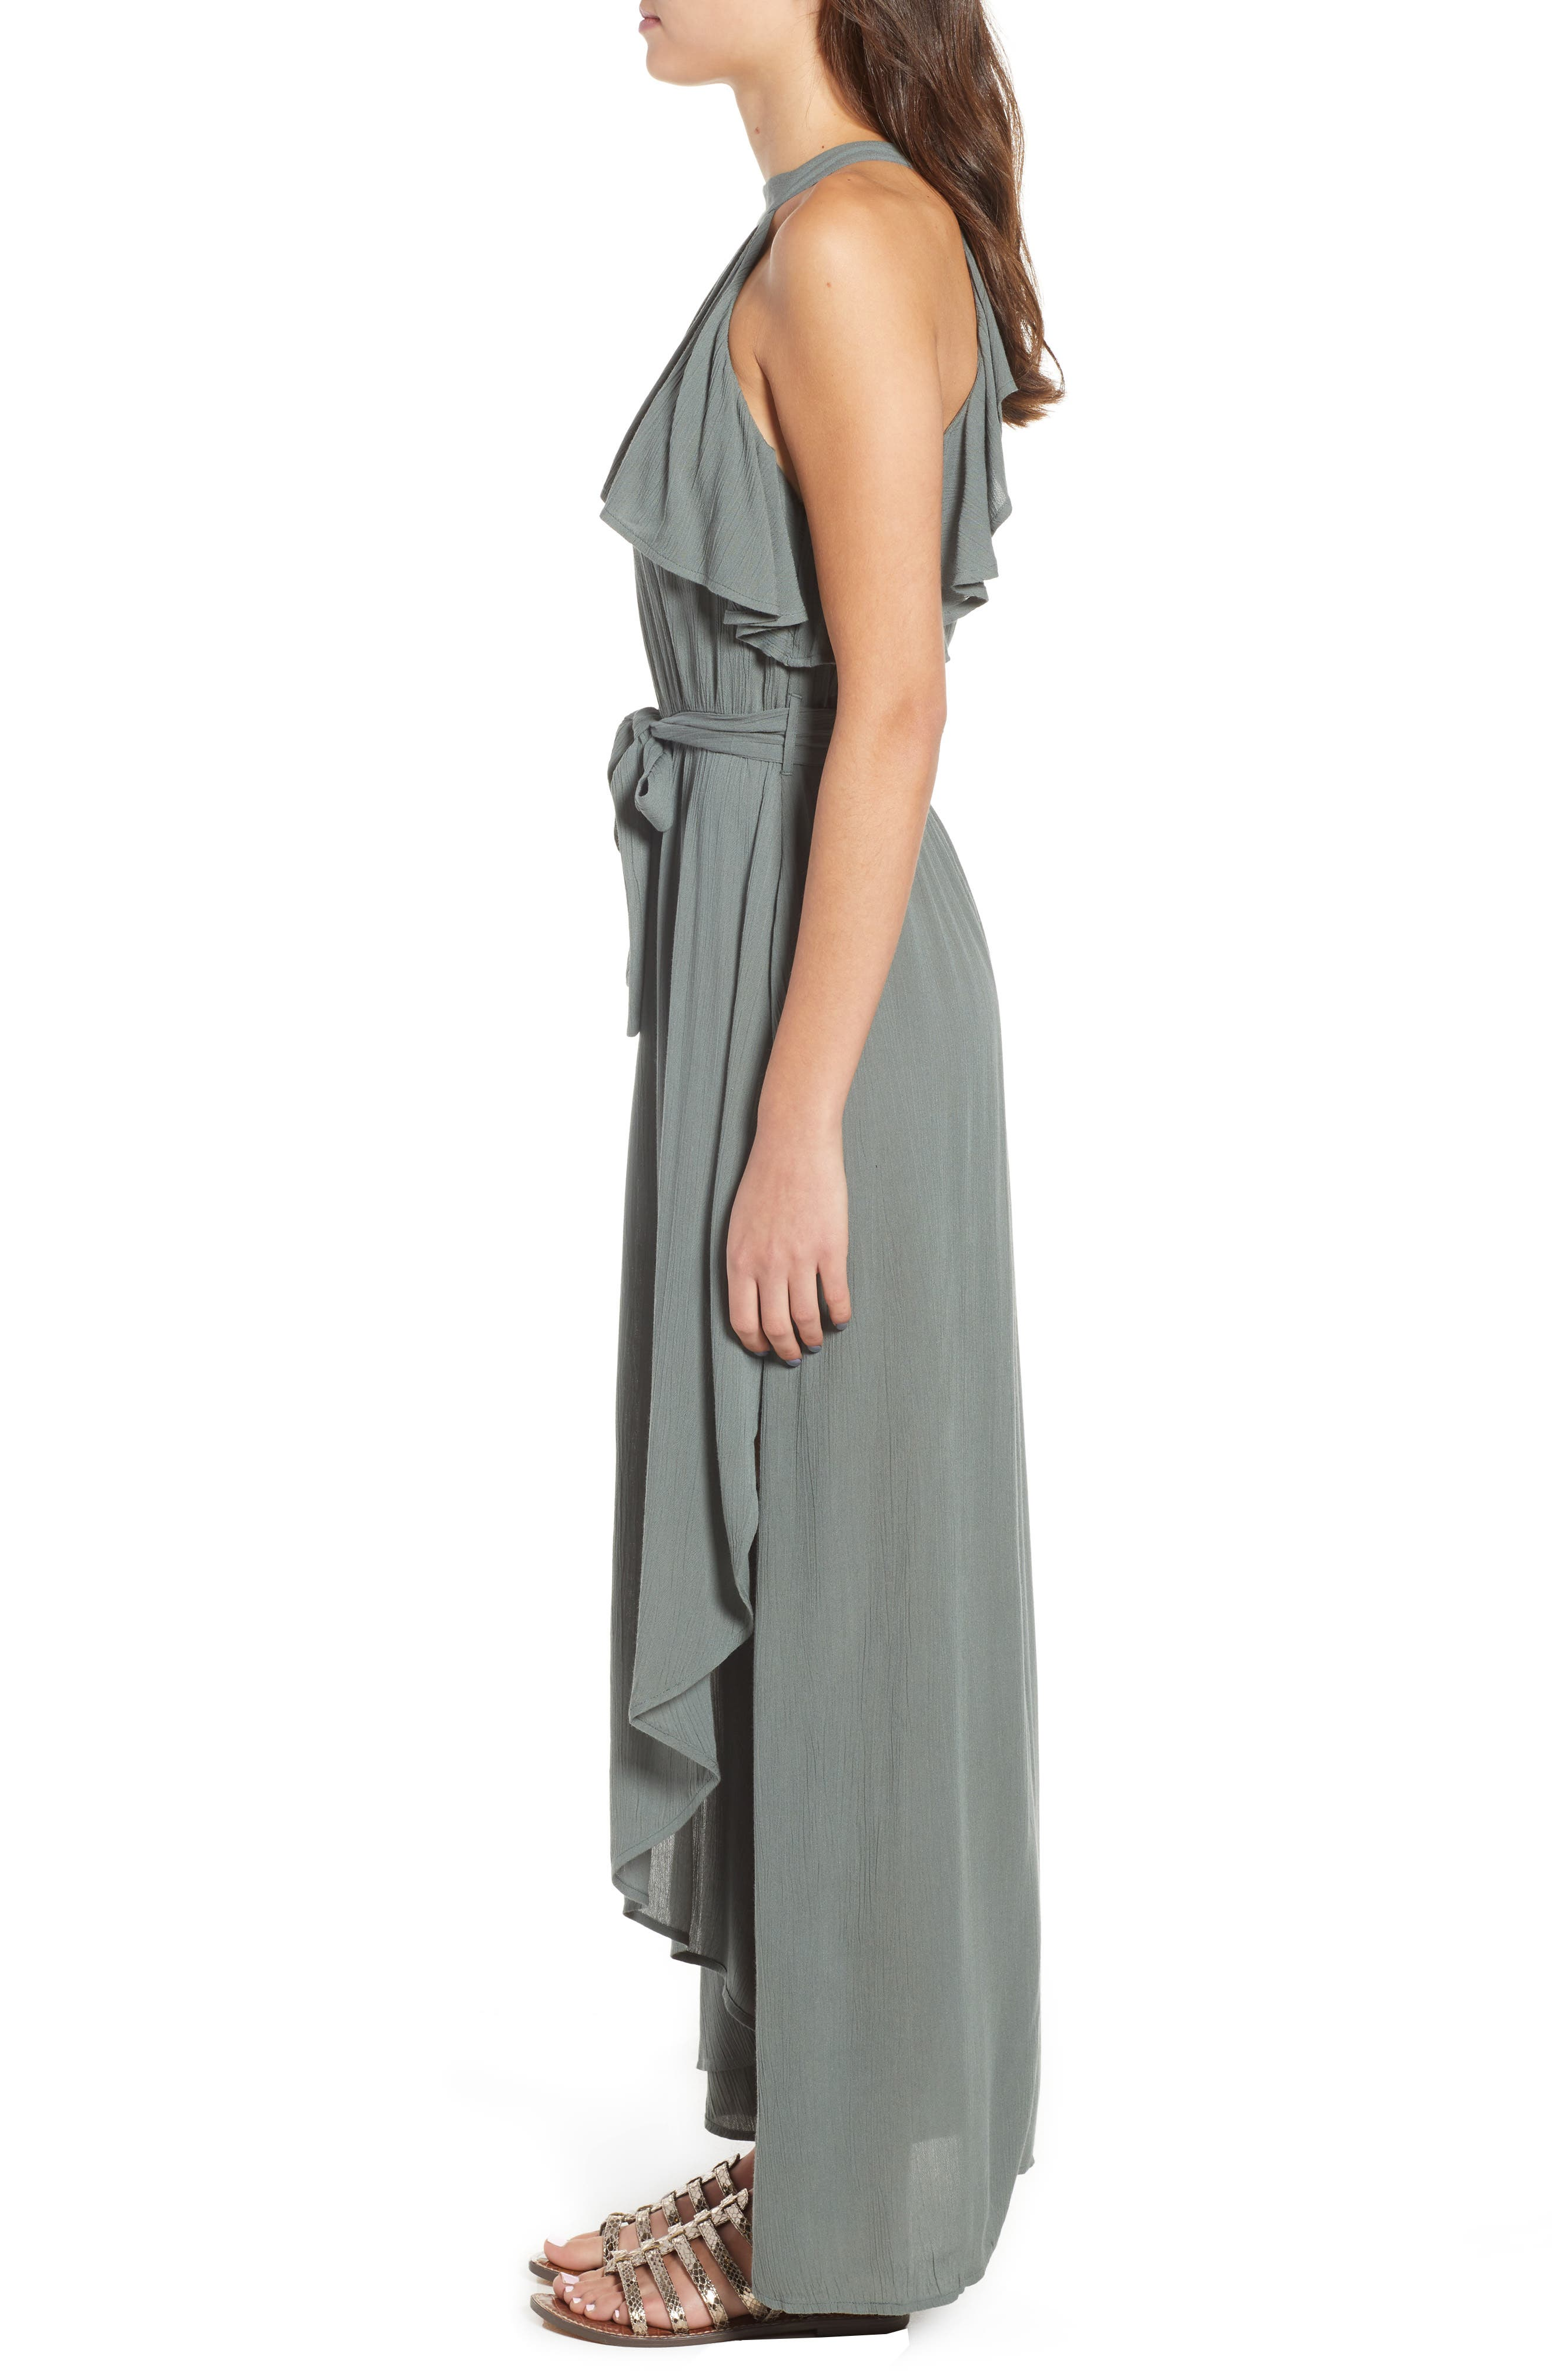 Misty Asymmetrical Dress,                             Alternate thumbnail 3, color,                             300